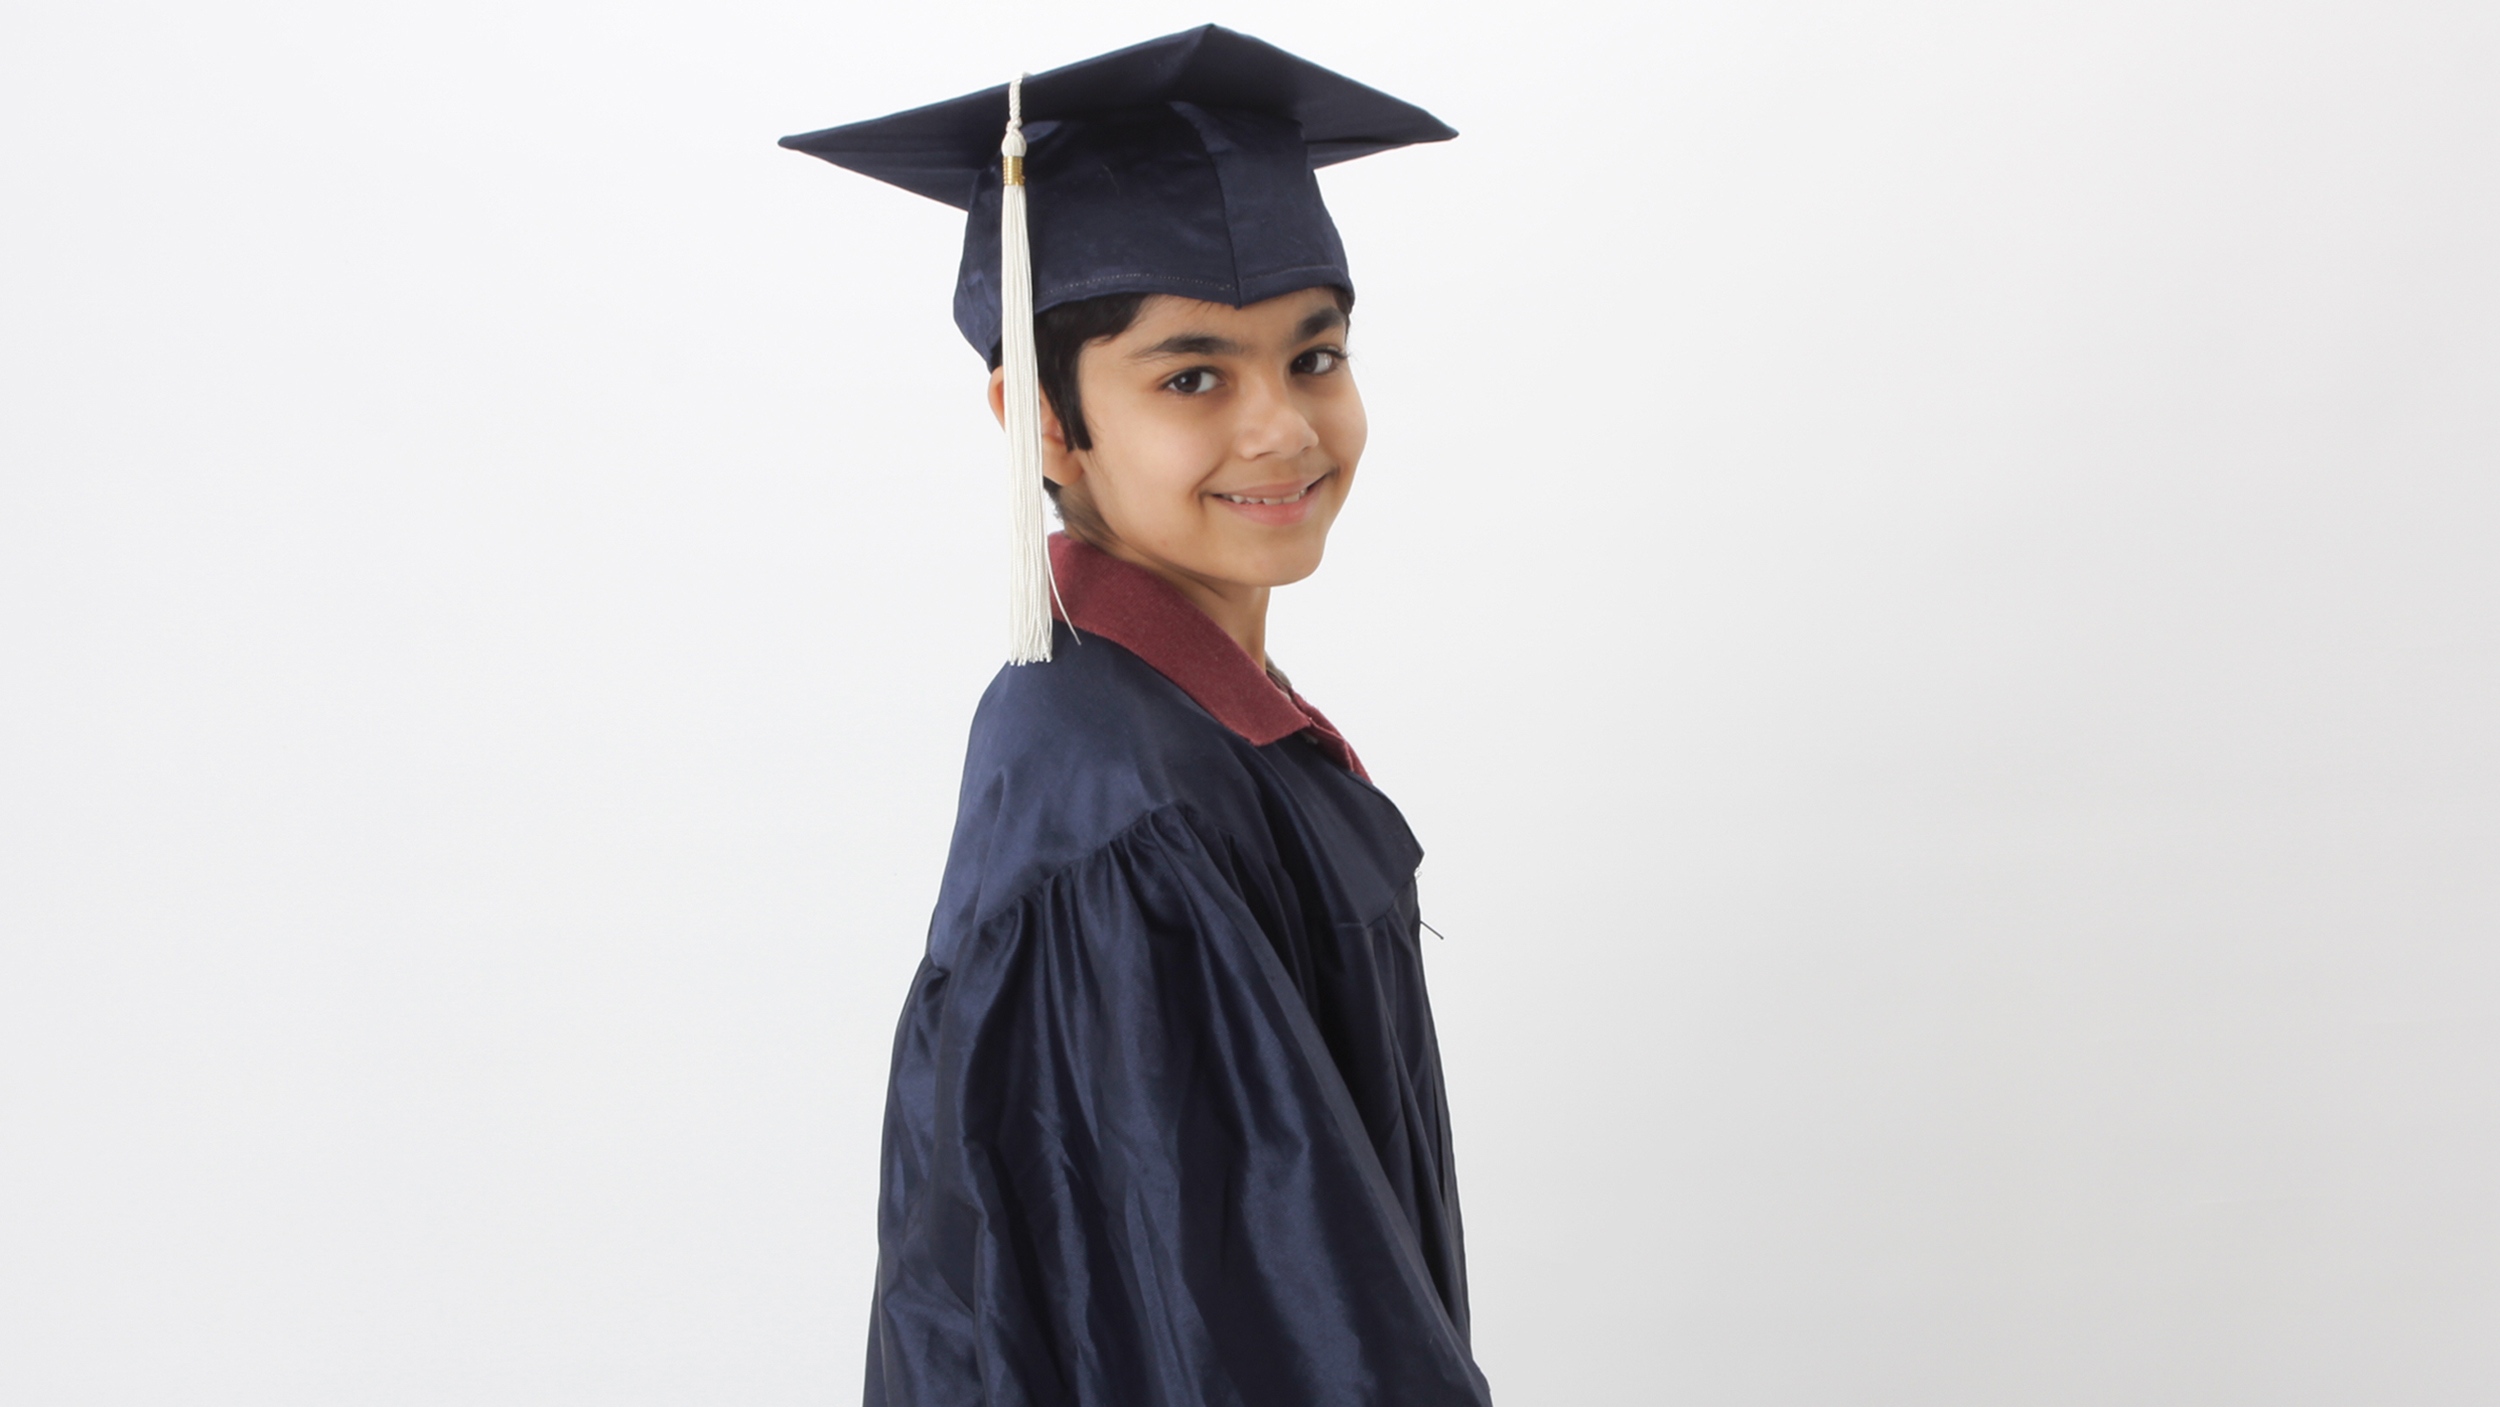 An engineer at 15, this Indian-American is now all set for PhD